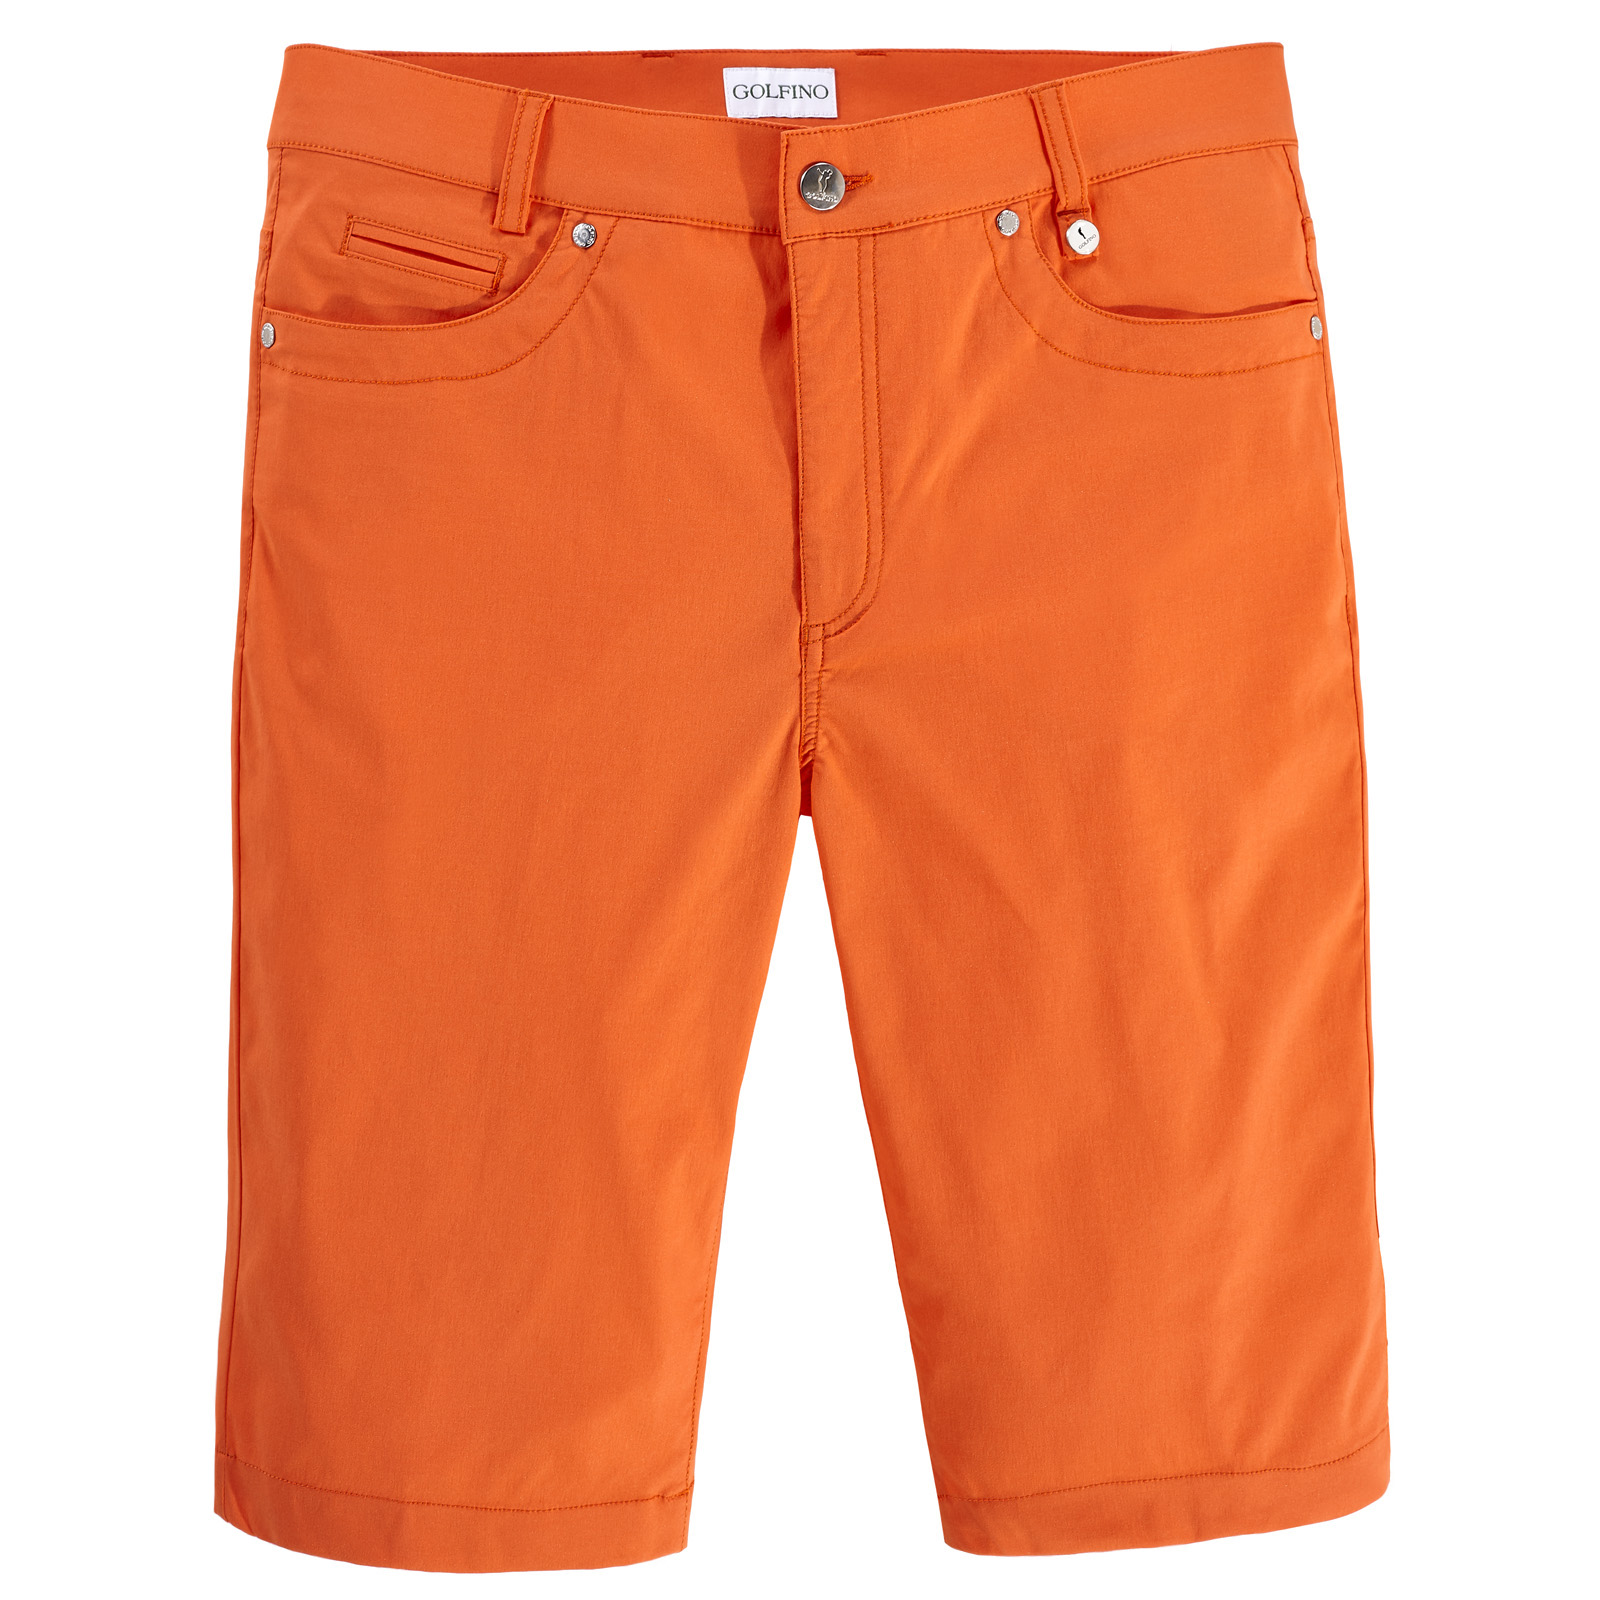 Golfbermudas mit leichtem Stretch-Element